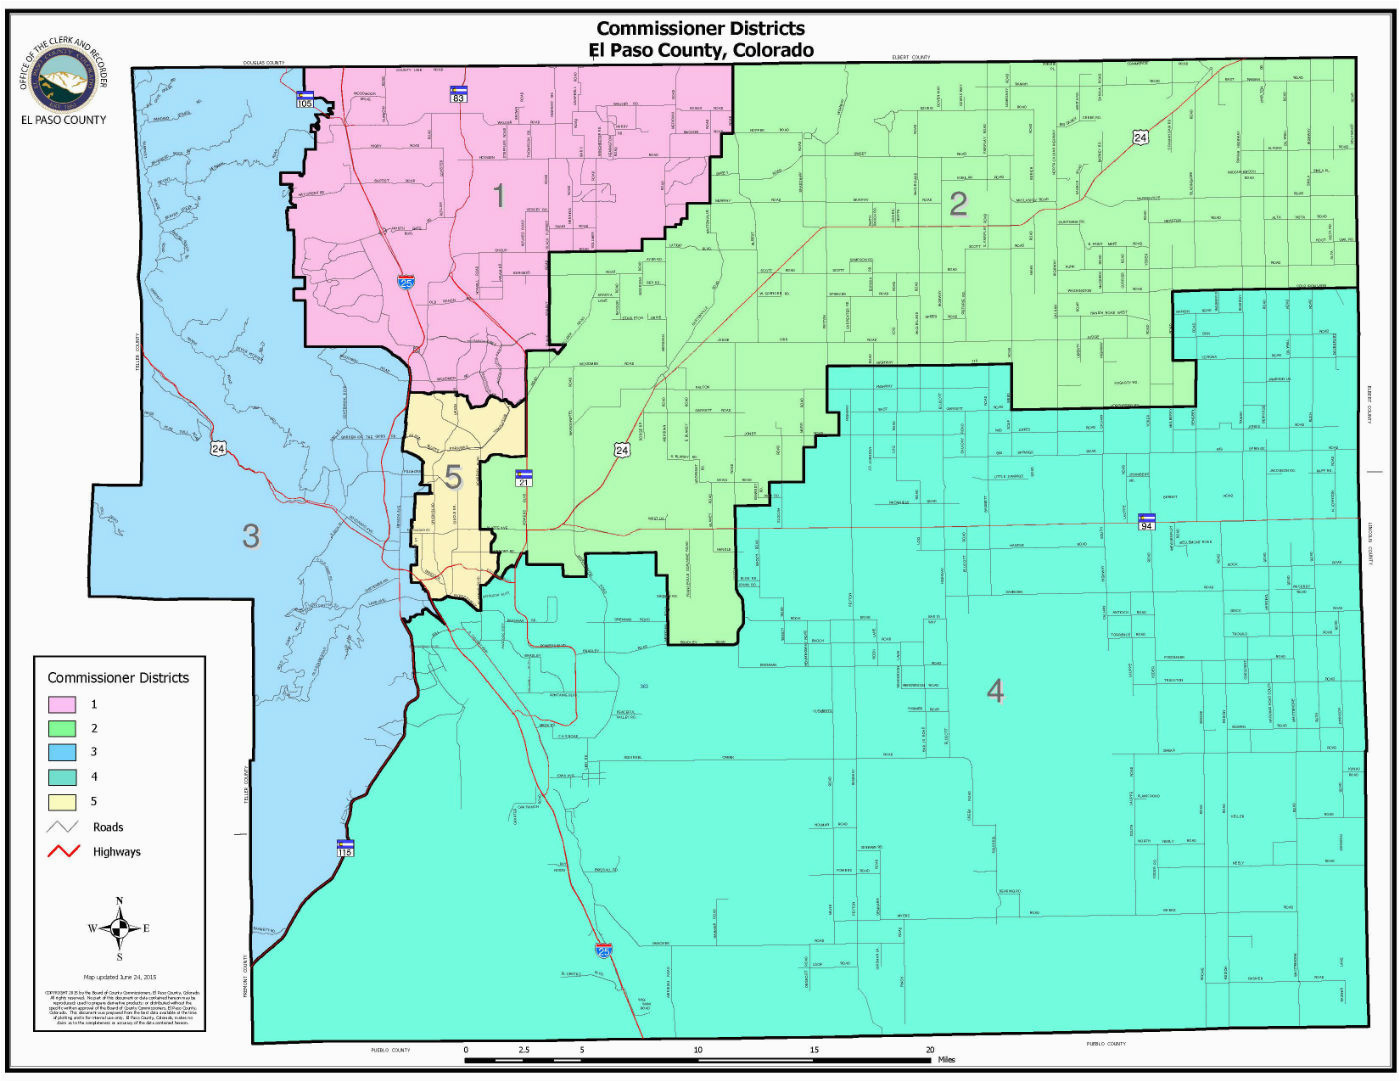 Colorado Water Districts Map Board Of County Commissioners El Paso County Board Of County